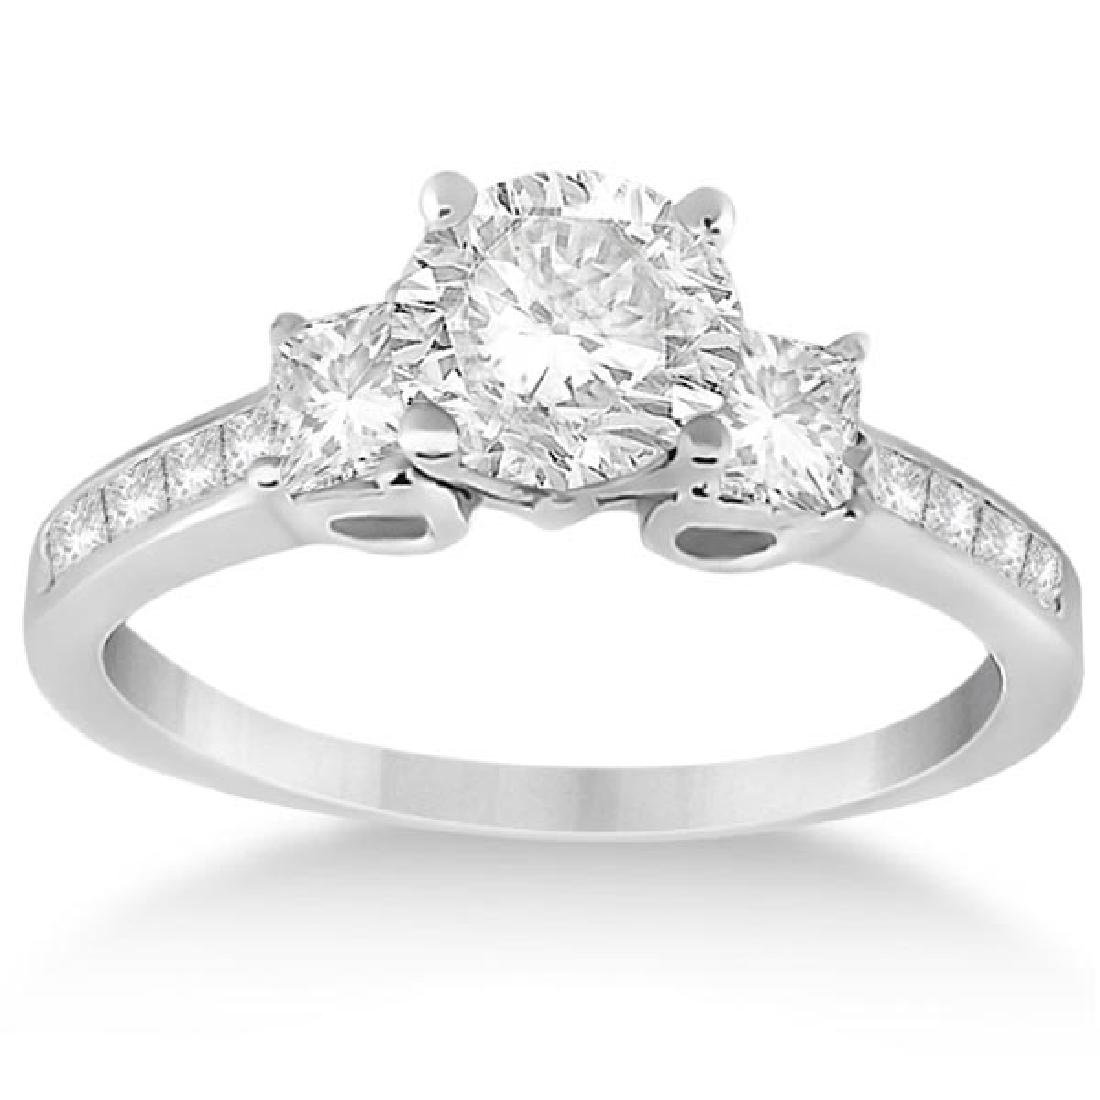 Three-Stone Princess Cut Diamond Engagement Ring 14k Wh